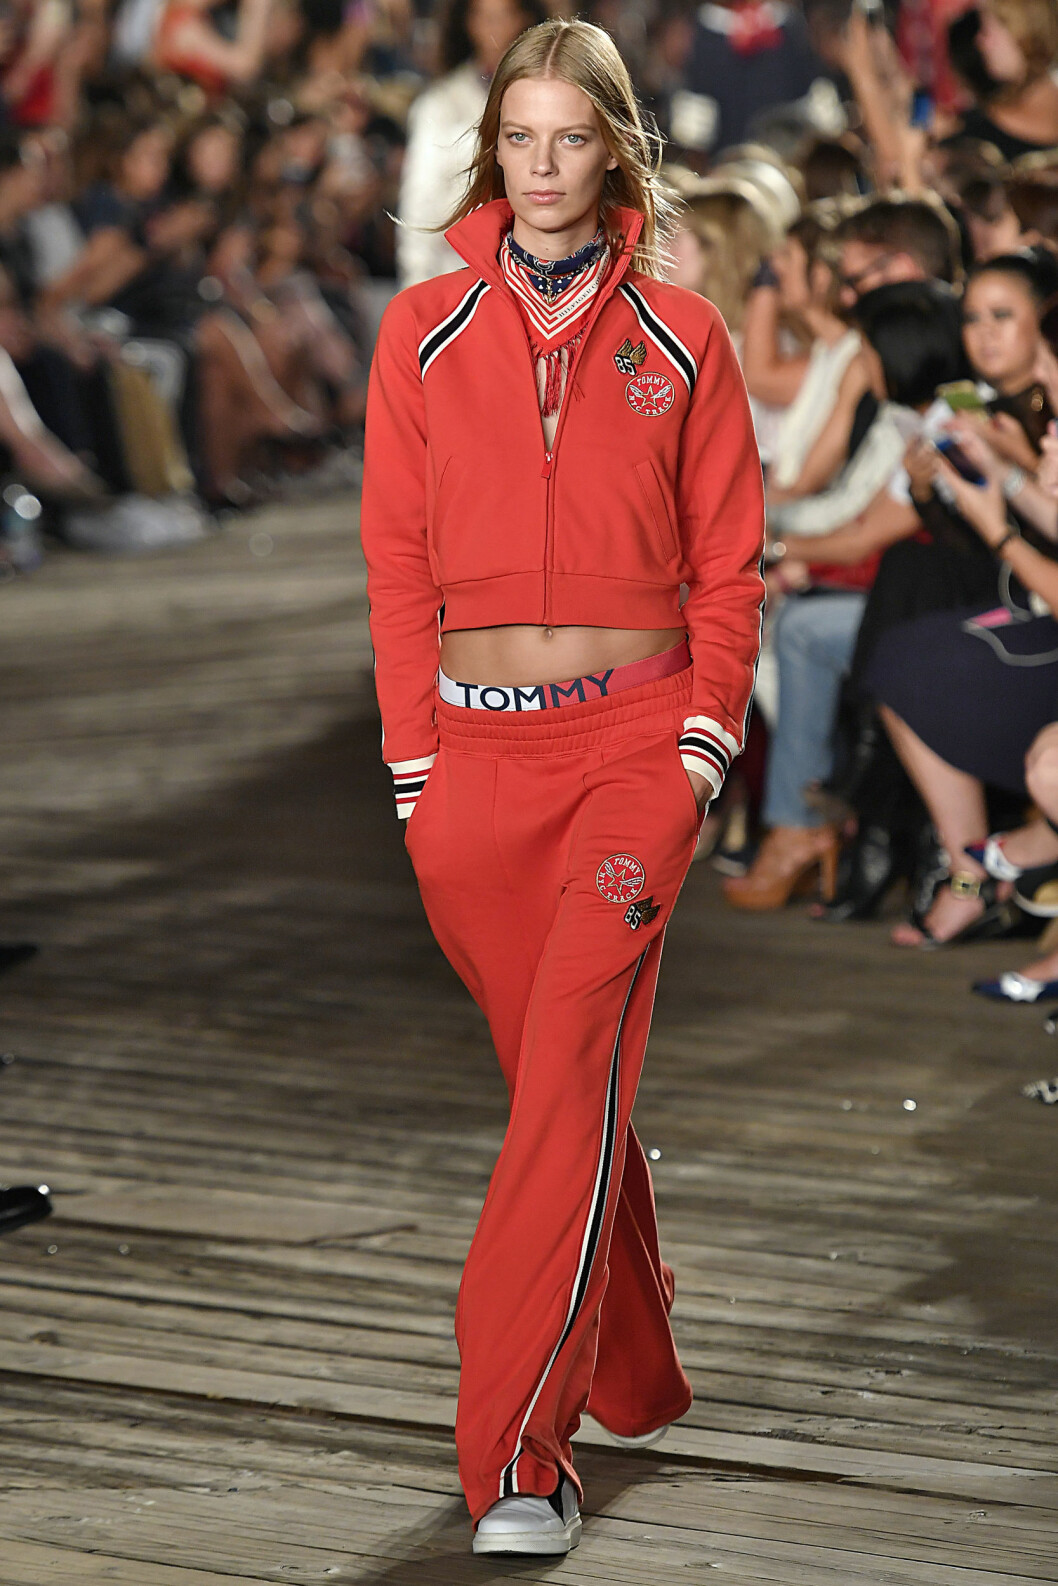 TOMMY HILFIGER SS17 Foto: SipaUSA